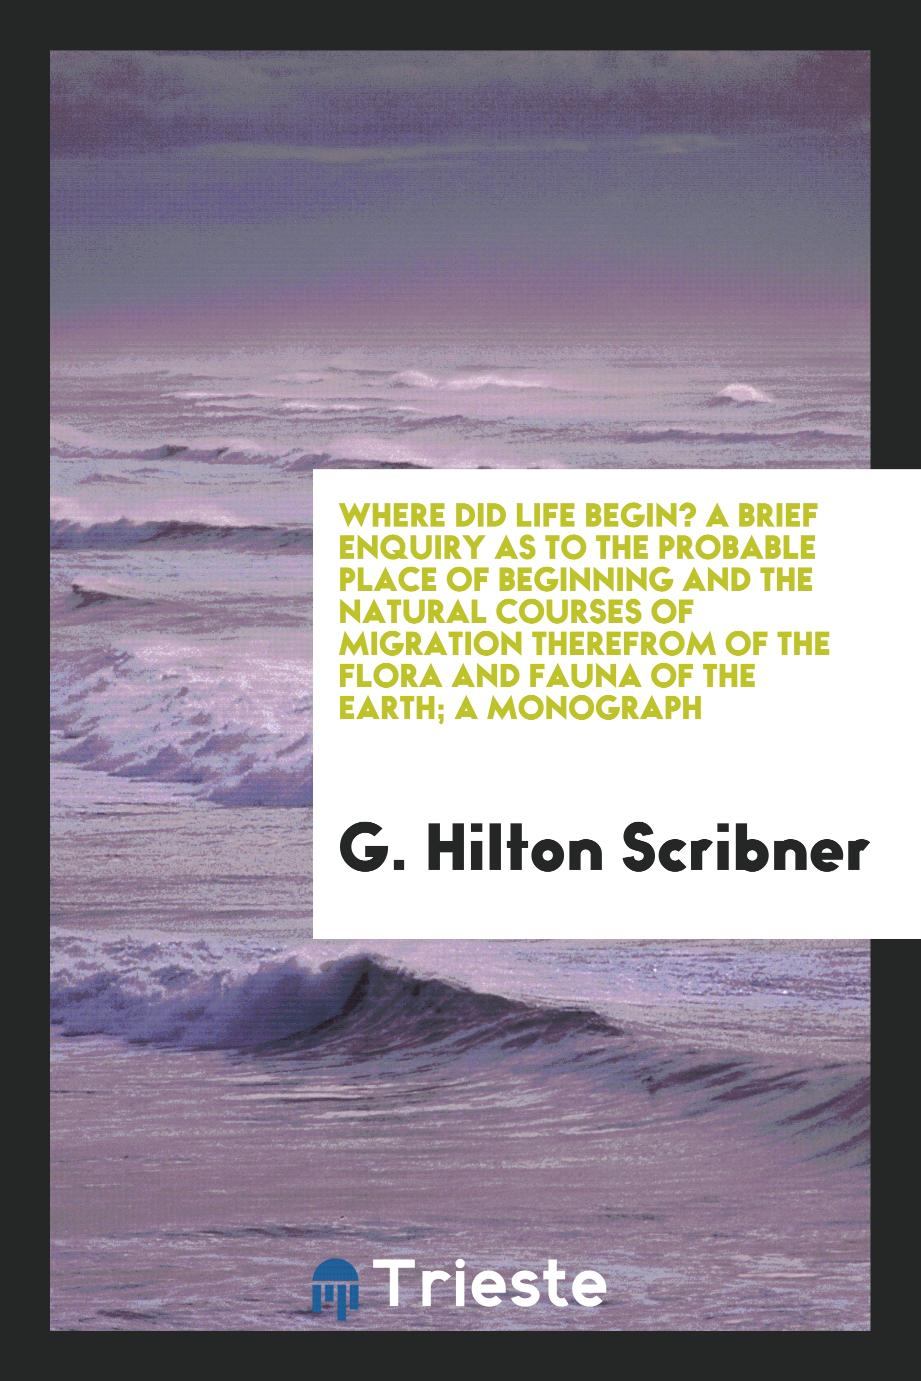 Where did life begin? A brief enquiry as to the probable place of beginning and the natural courses of migration therefrom of the flora and fauna of the earth; a monograph